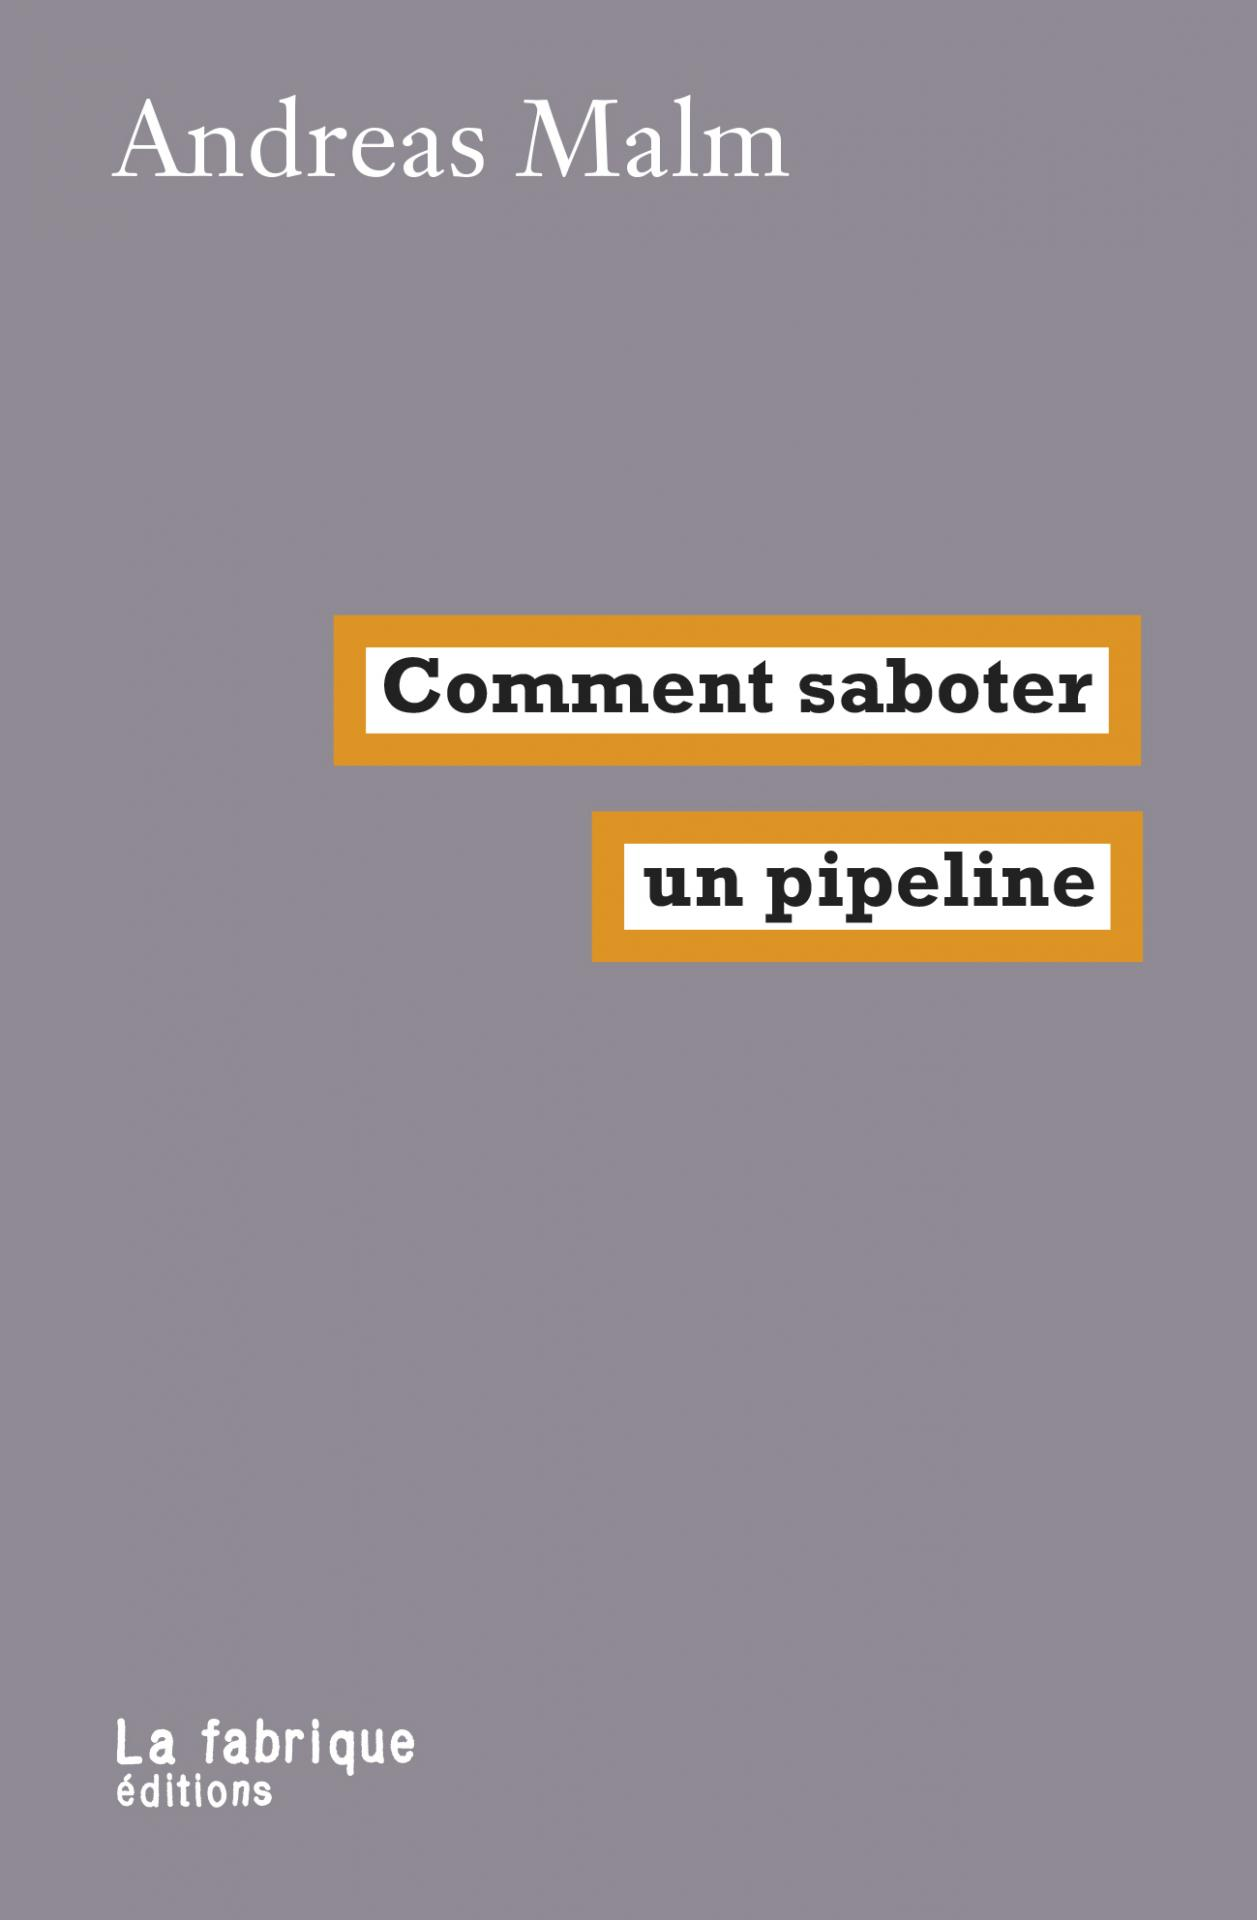 Comment saboter un pipeline - Andreas Malm